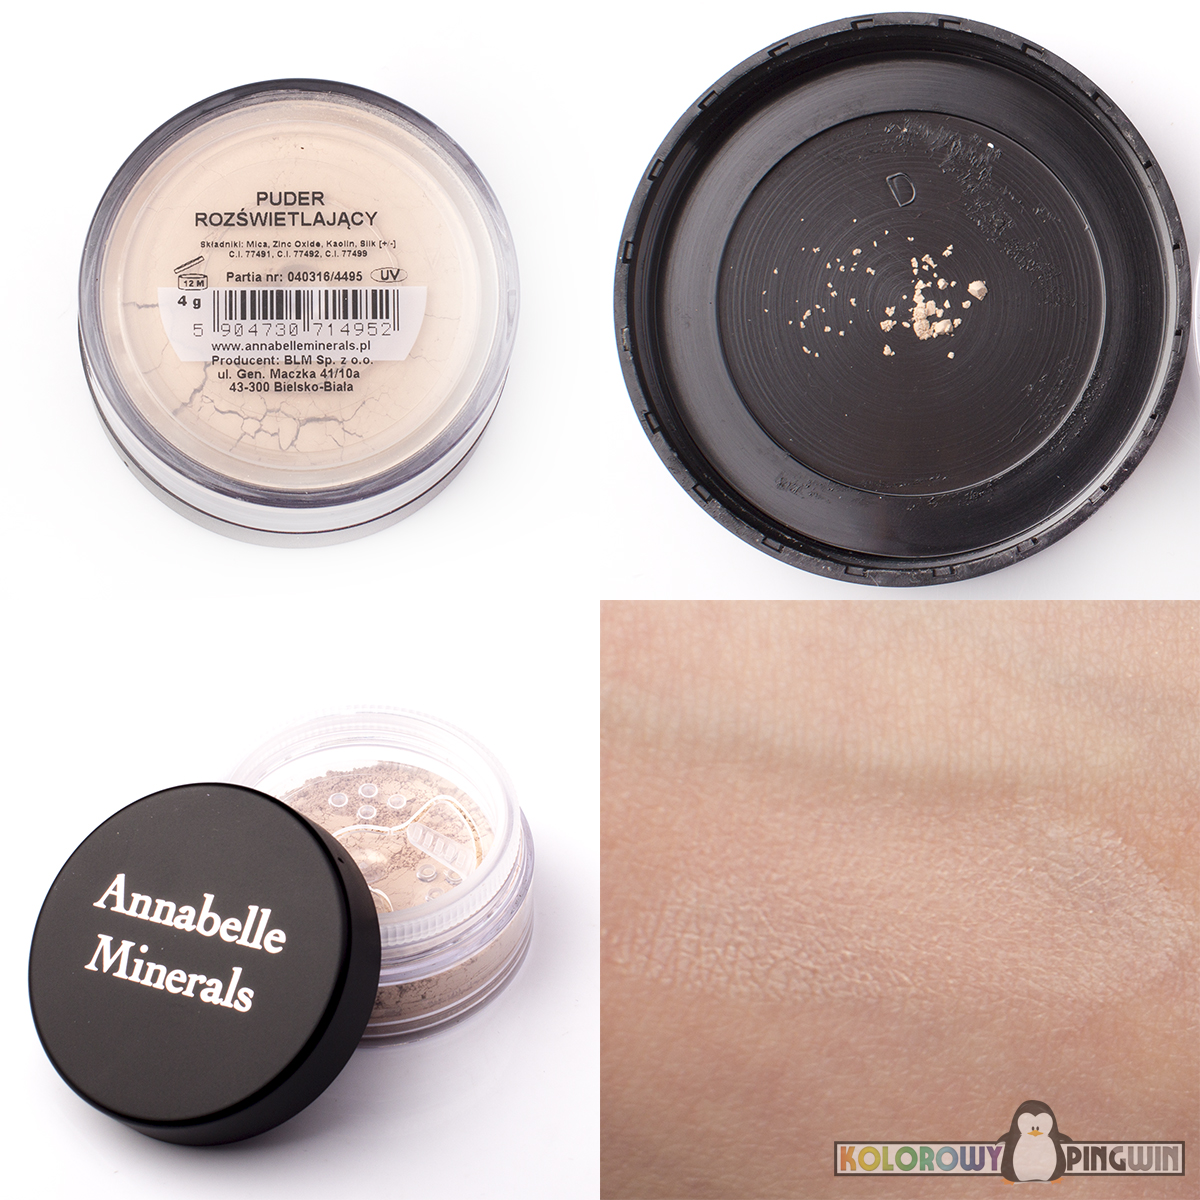 annabelle puder